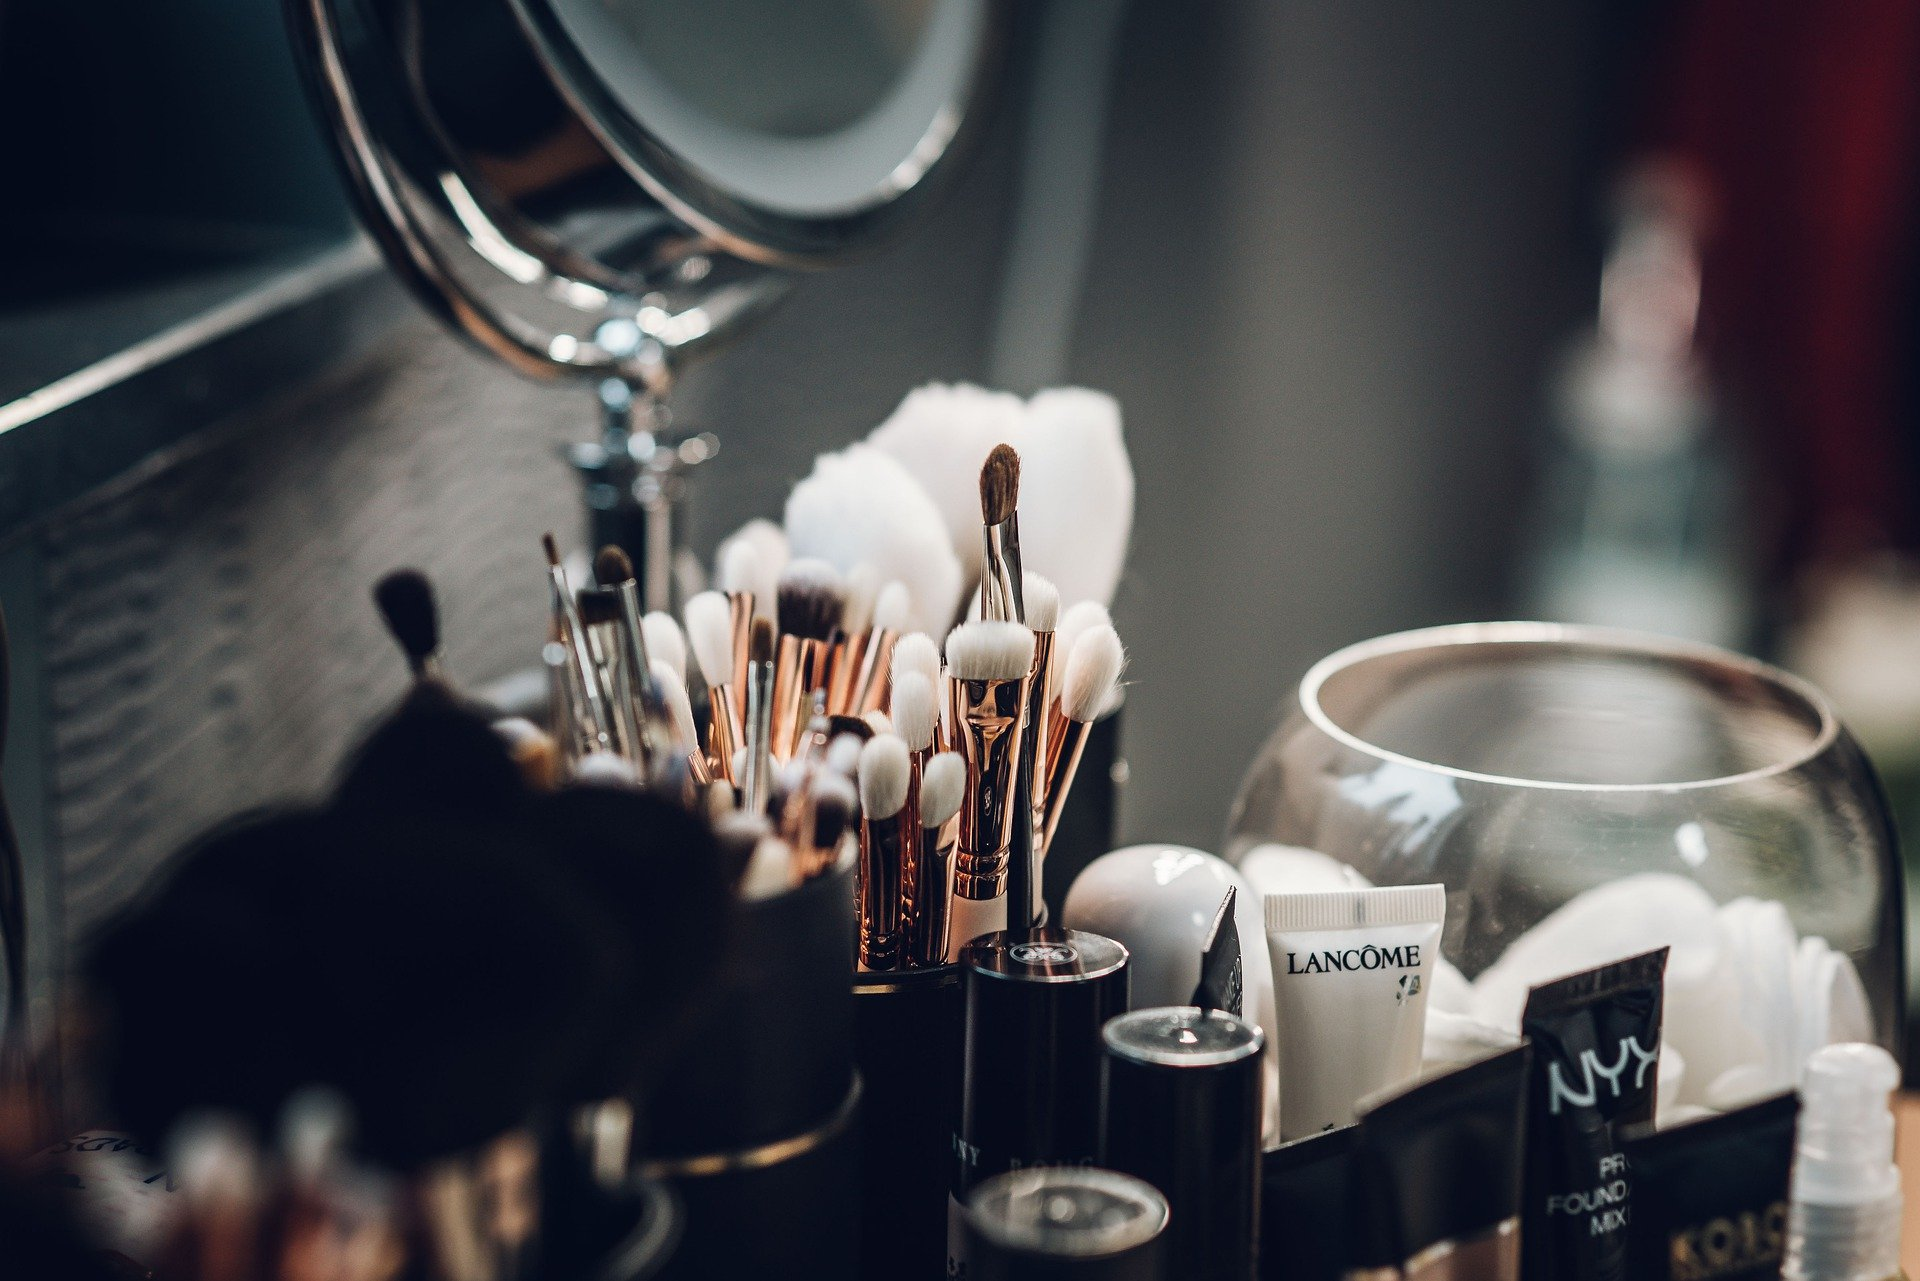 6 best budget friendly makeup brands in India